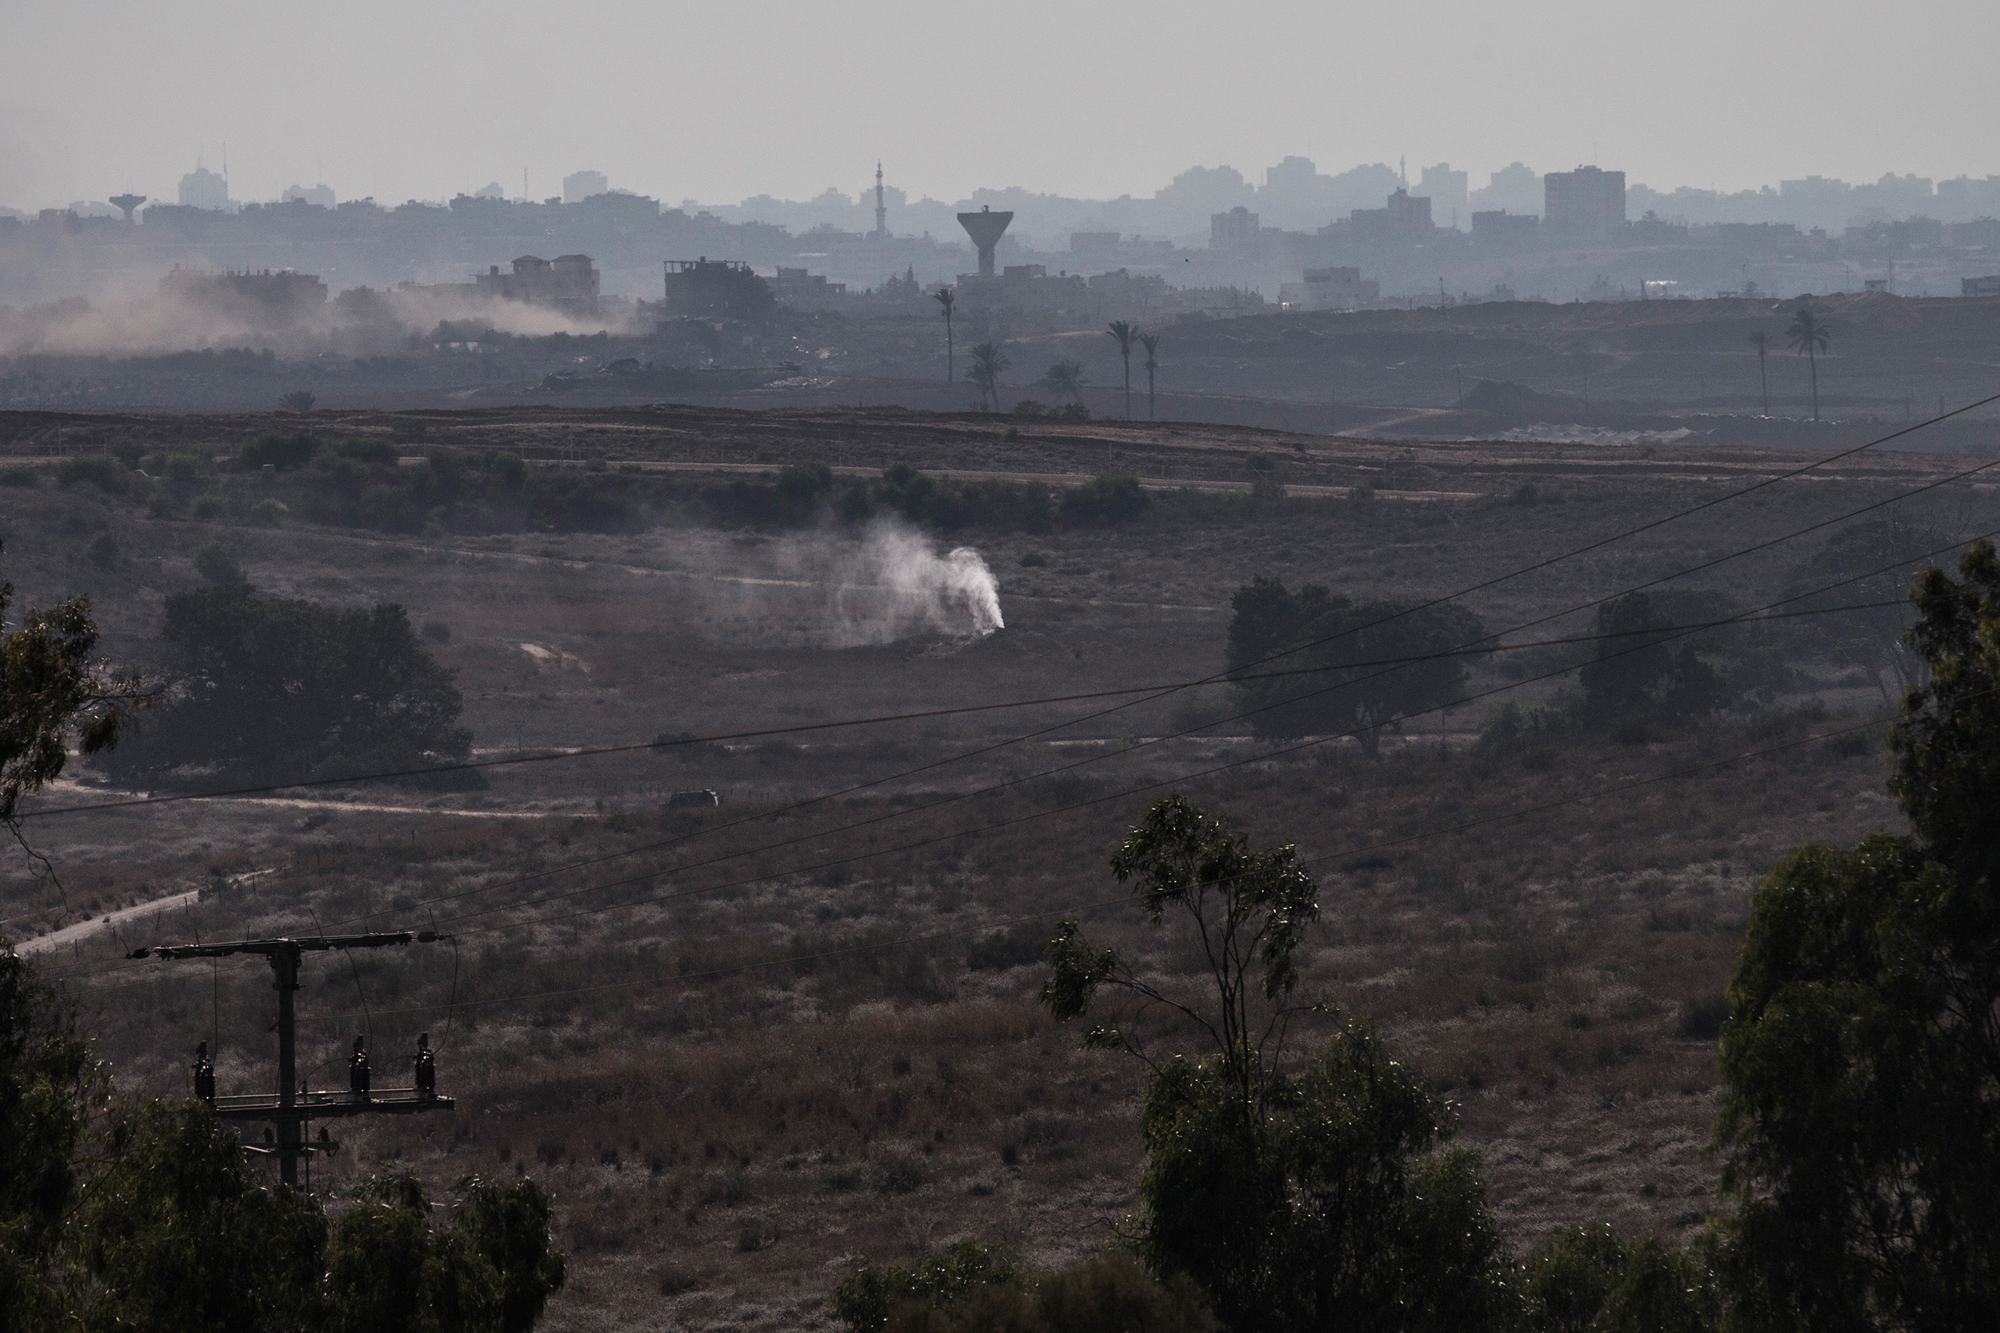 Smoke pours out of the ground due to an alleged campaign by the Israeli military to fill tunnels originating in Gaza with smoke to discover entrances into Israel on July 23, 2014 near Sderot, Israel.